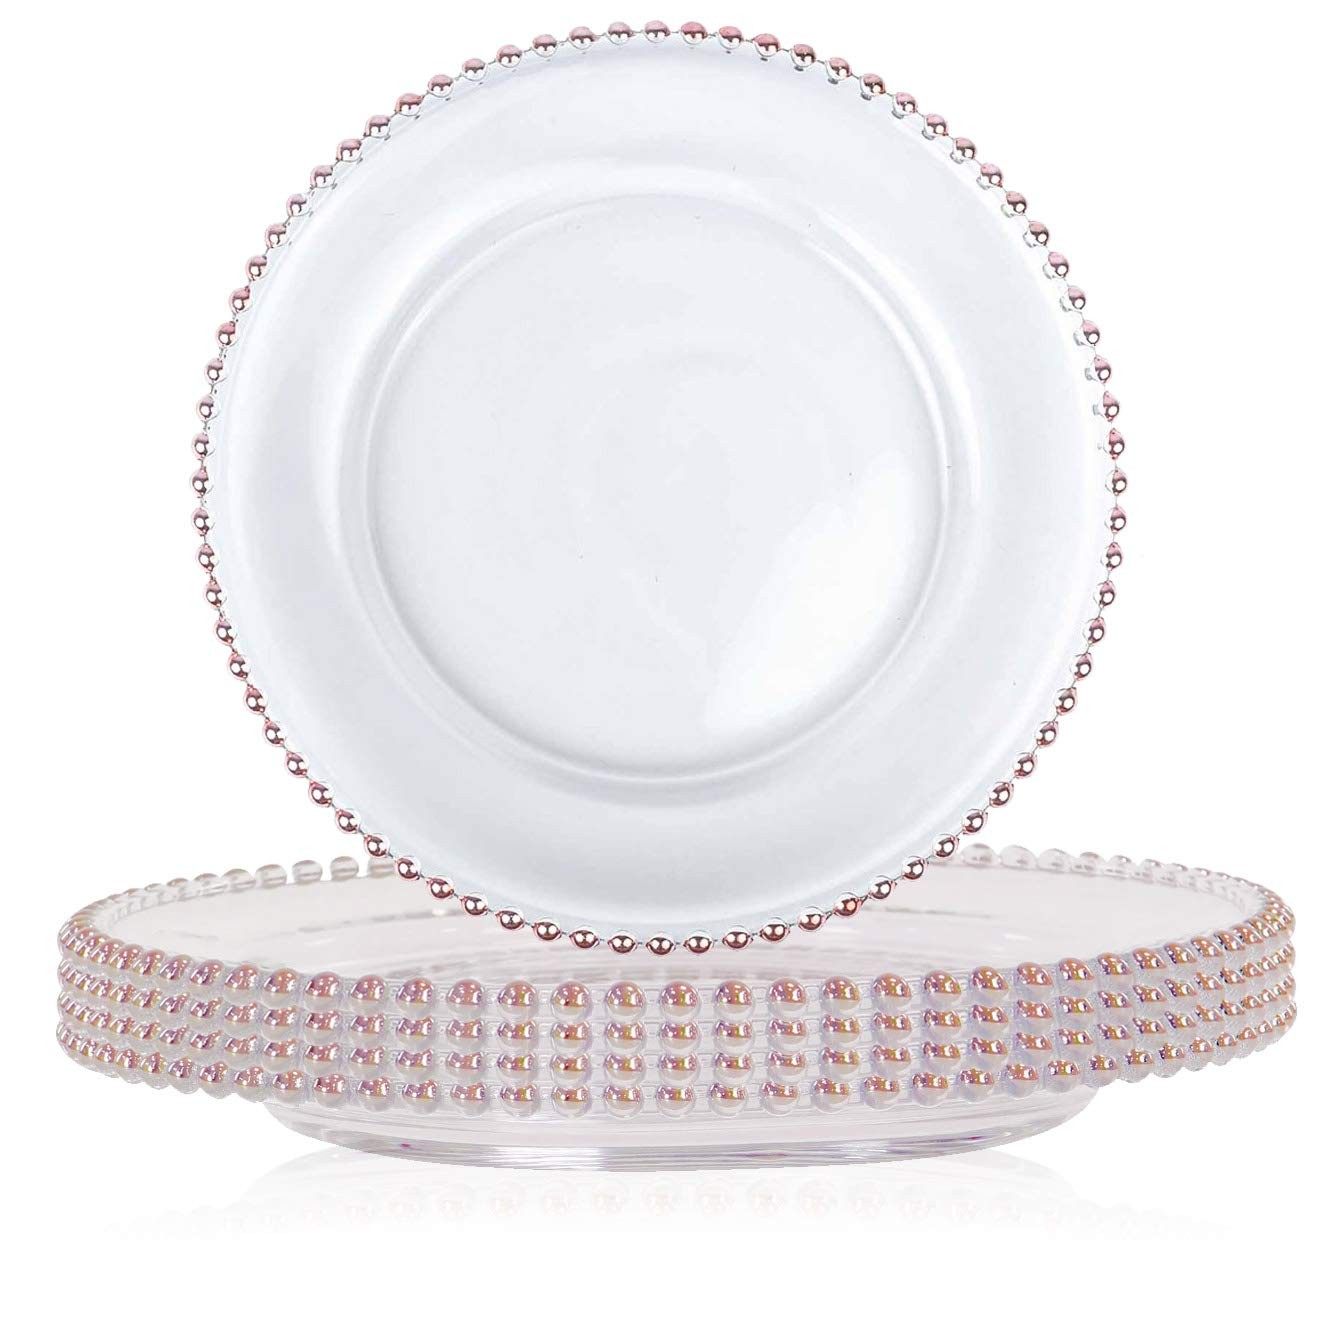 TigerChef Rose Gold Round Beaded Charger Plate 12 - Set of 8